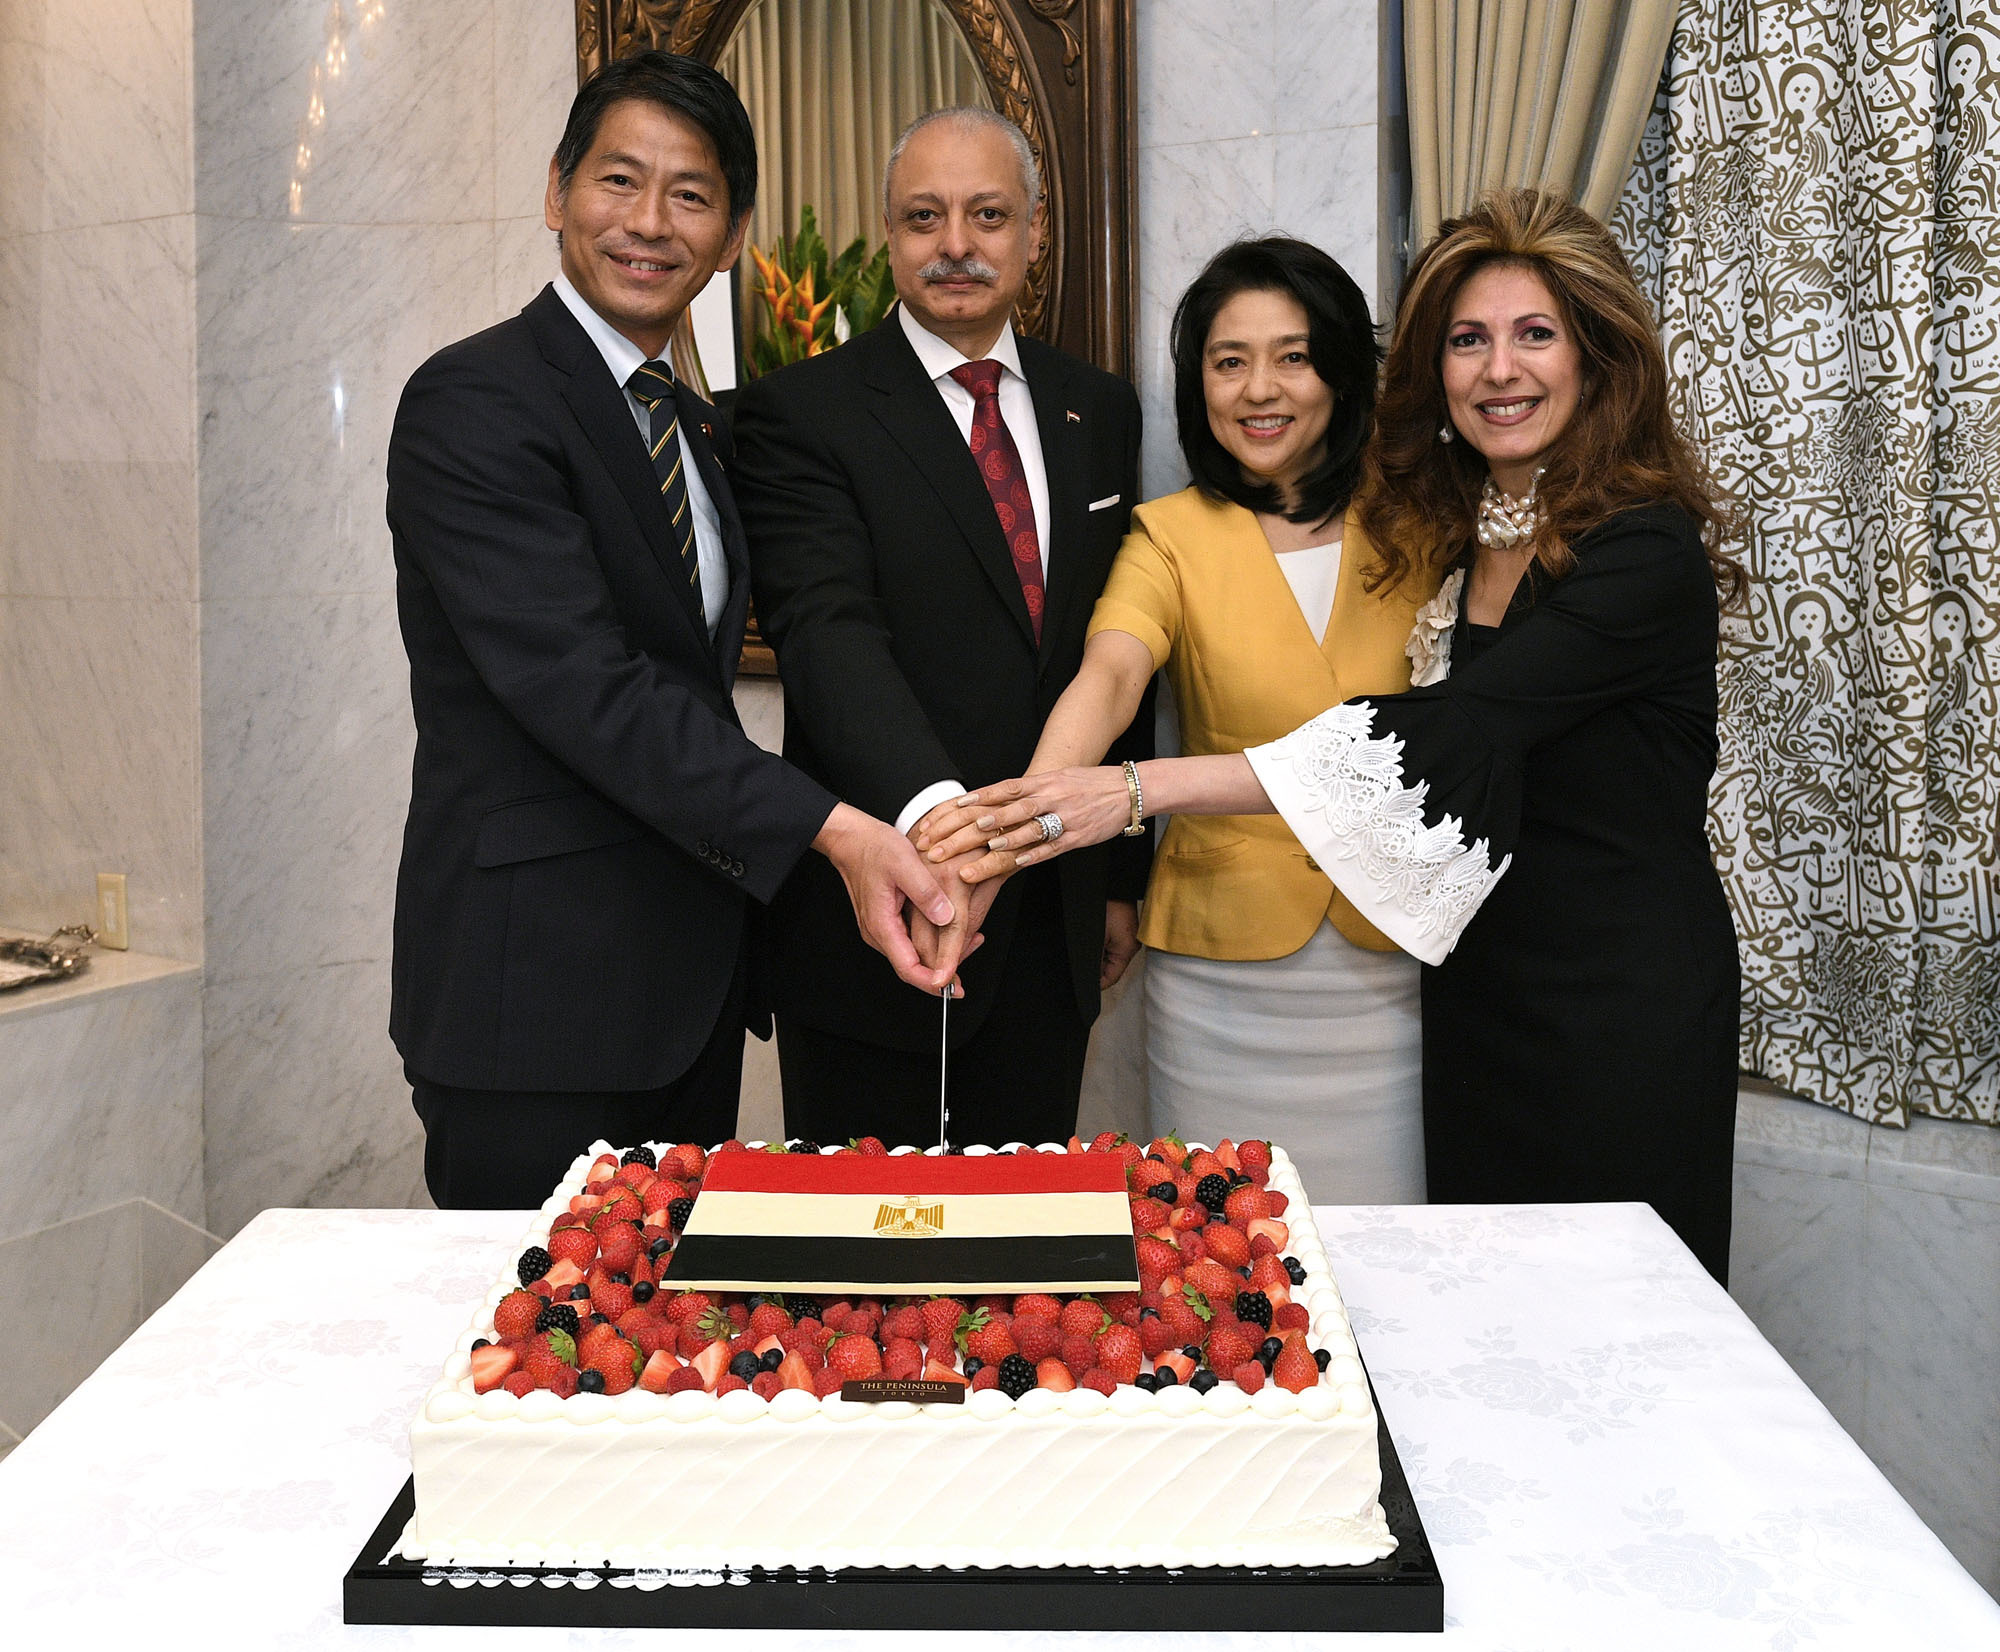 Egyptian Ambassador Ayman Kamel (second from left) and his wife, Ghada Youssef (far right), pose with Kenji Yamada, parliamentary vice-minister for foreign affairs (far left), and Kaori Kono, wife of Foreign Minister Taro Kono, during a cake-cutting ceremony to celebrate Egypt's national day at a reception at the ambassador's residence on July 8.   YOSHIAKI MIURA